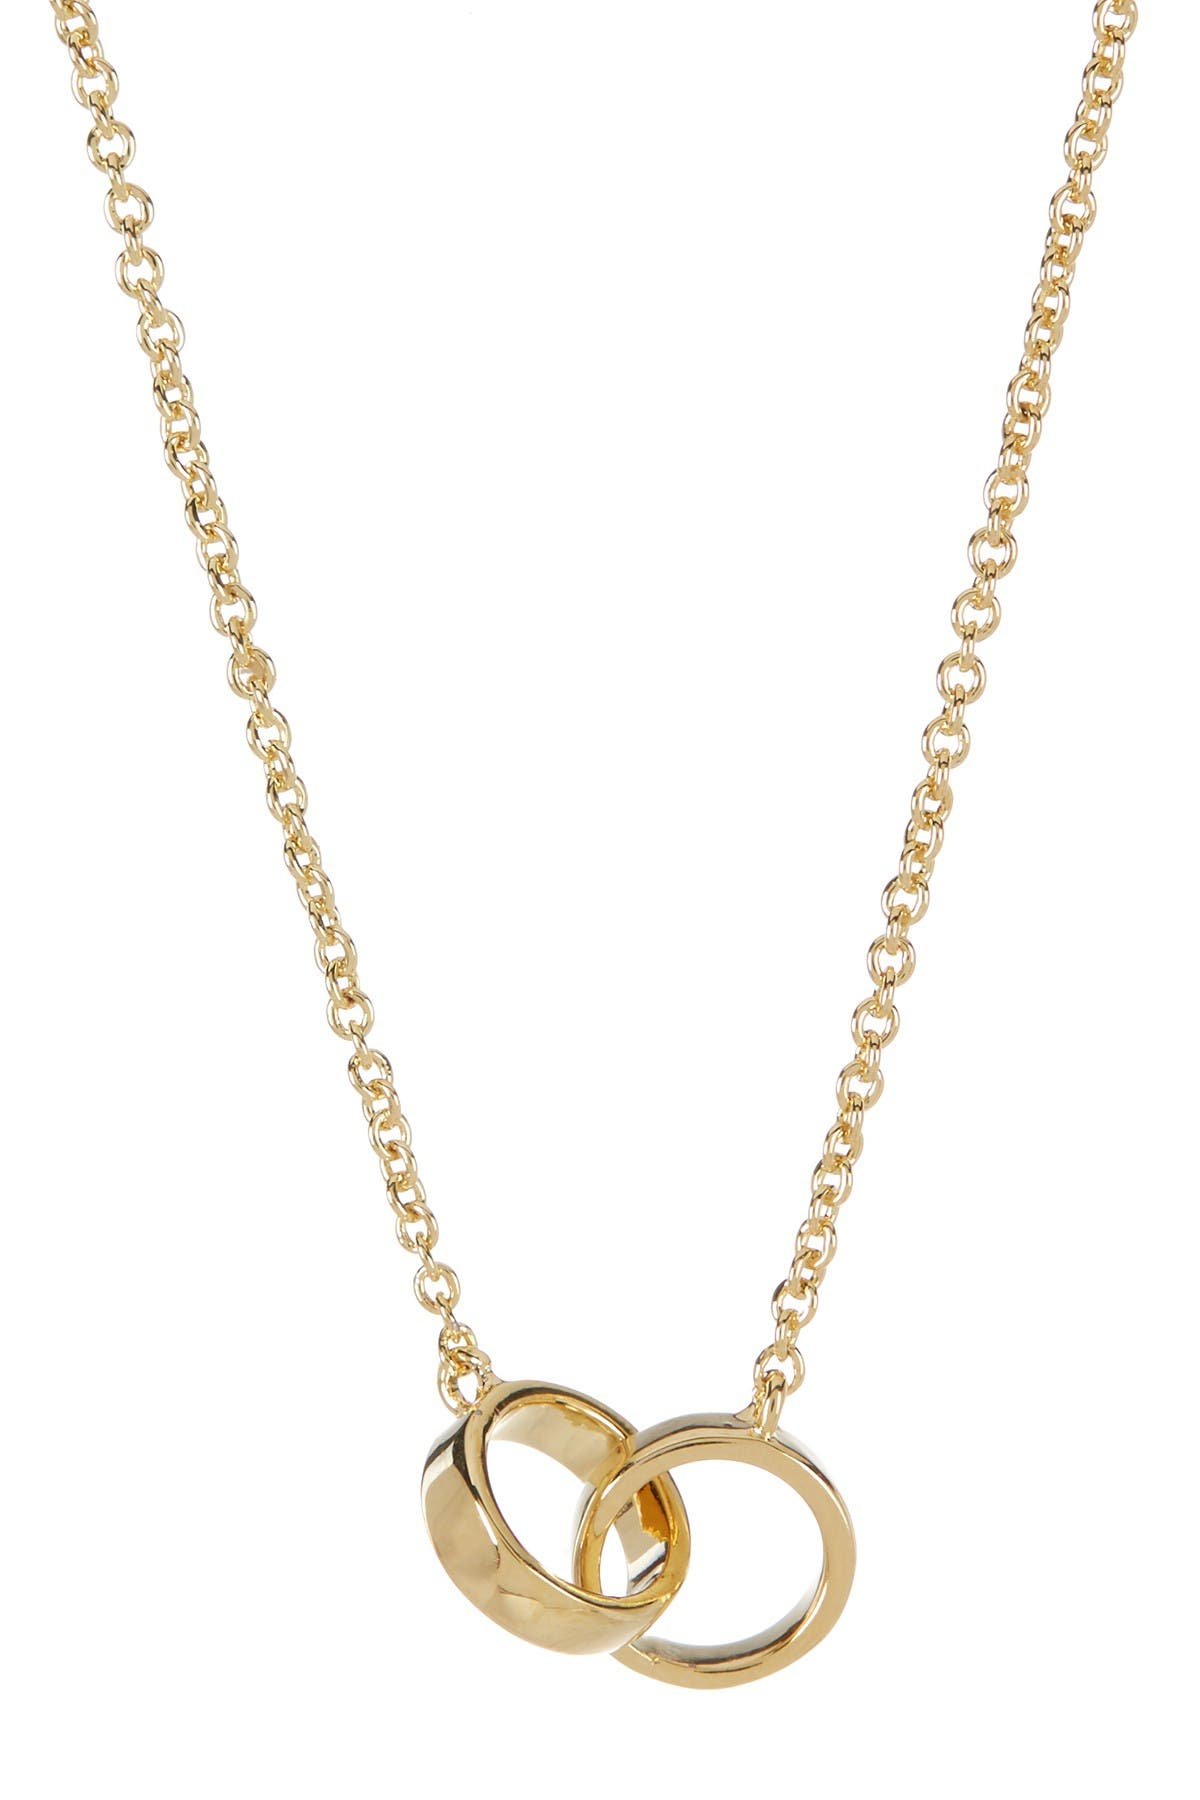 Image of Sterling Forever 14K Gold Plated Interlocking Circles Necklace